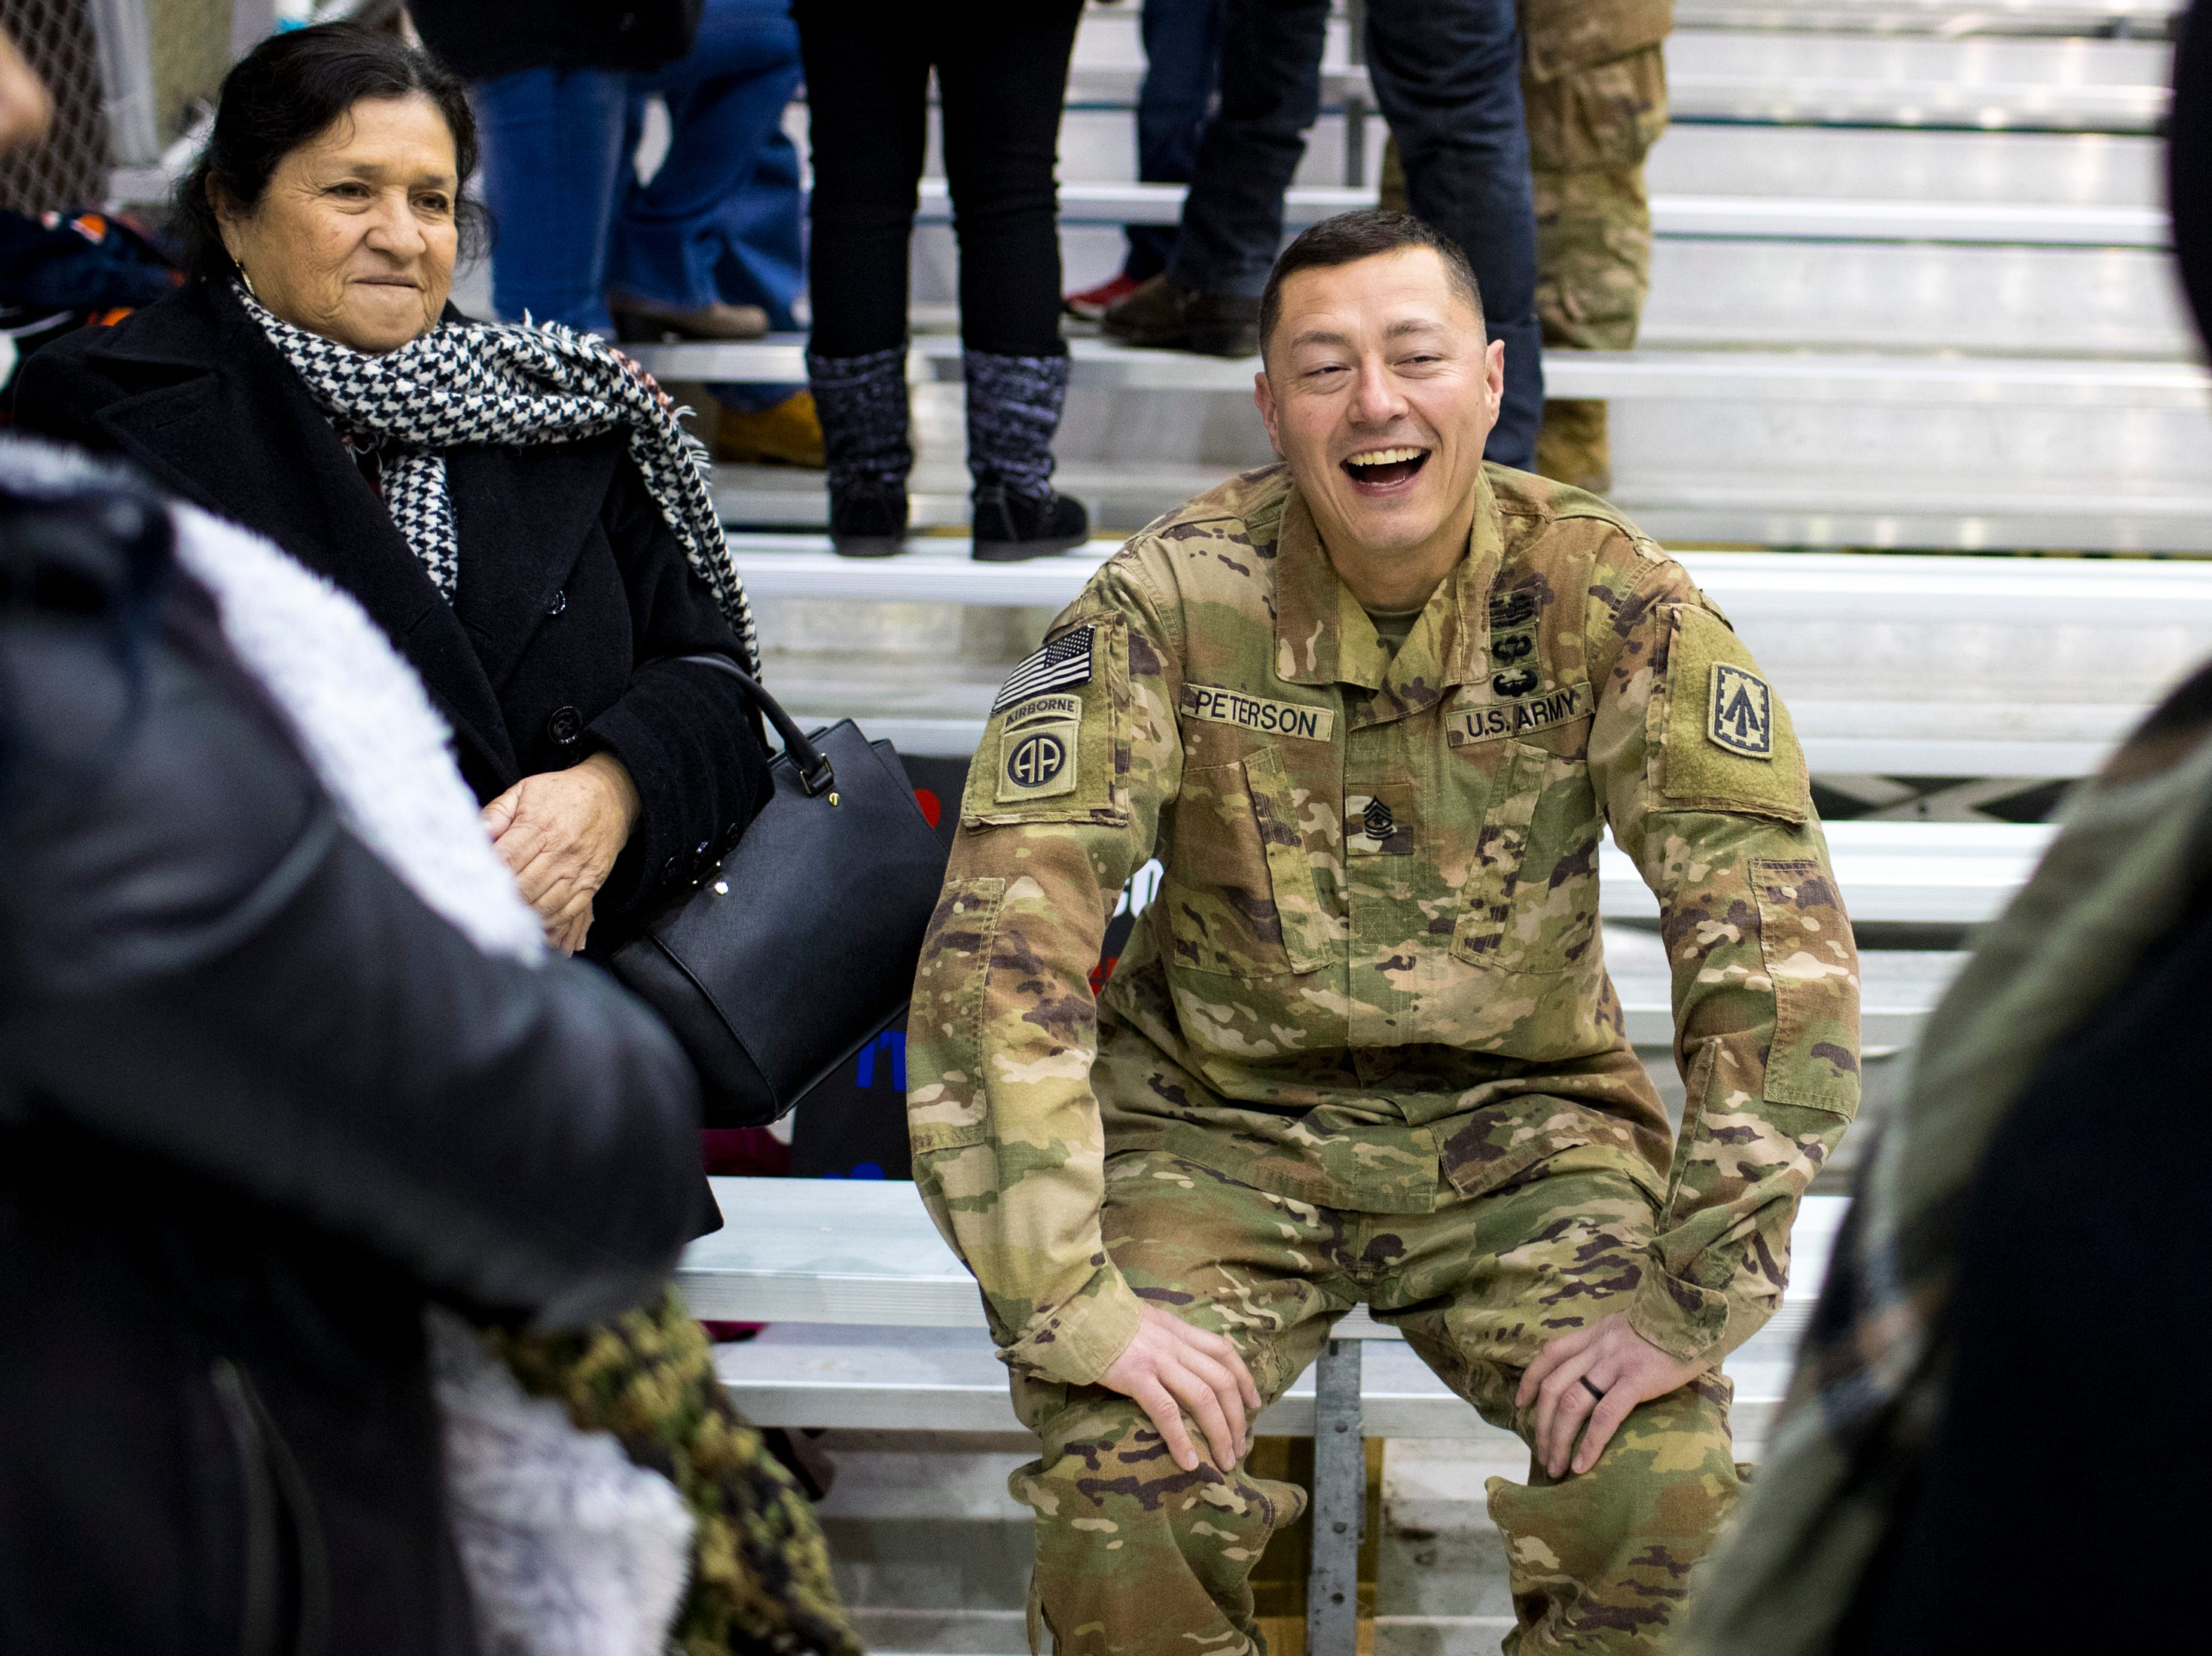 Sgt. Major Kevin Peterson talks to his family during the welcome home ceremony for the 2nd Battalion, 44th Air Defense Artillery Regiment and 101st Airborne Division at Fort Campbell in the early hours of Monday, Nov. 19, 2018. The soldiers were returning from a 9-month deployment in Afghanistan.